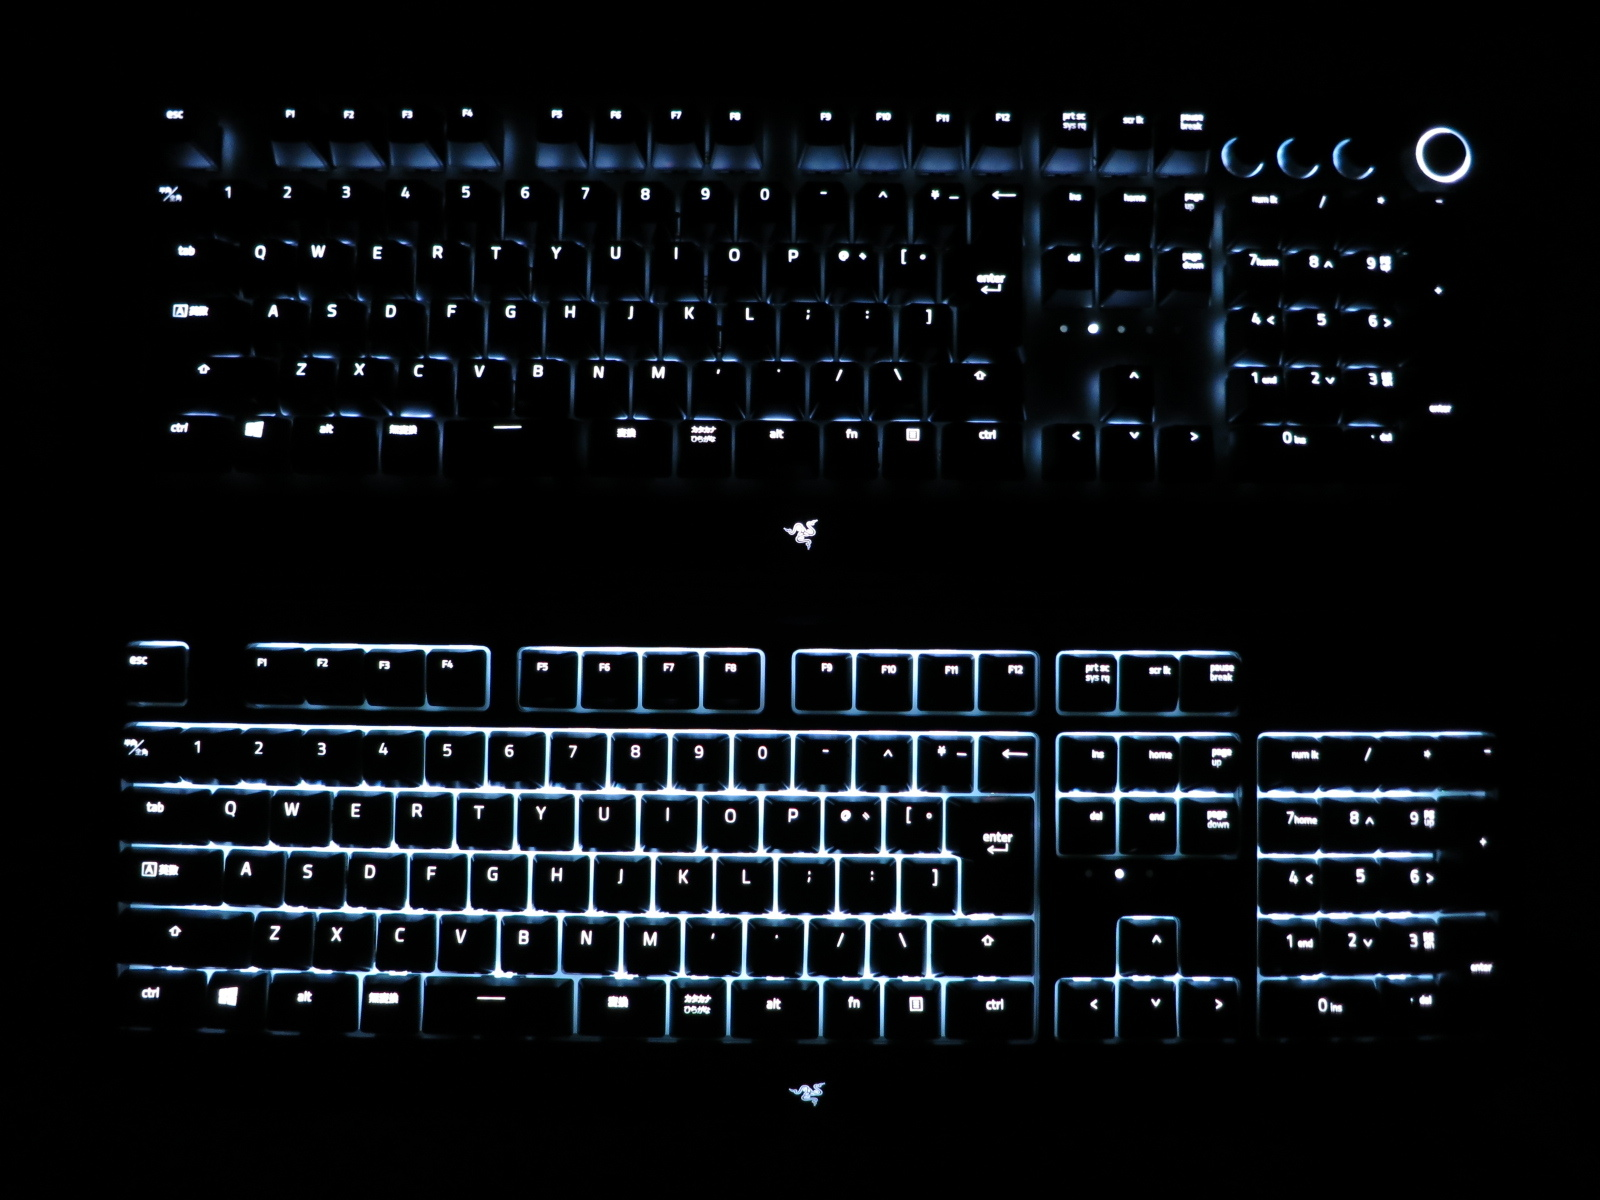 Razer_BlackWidow_2019vsElite_21.jpg